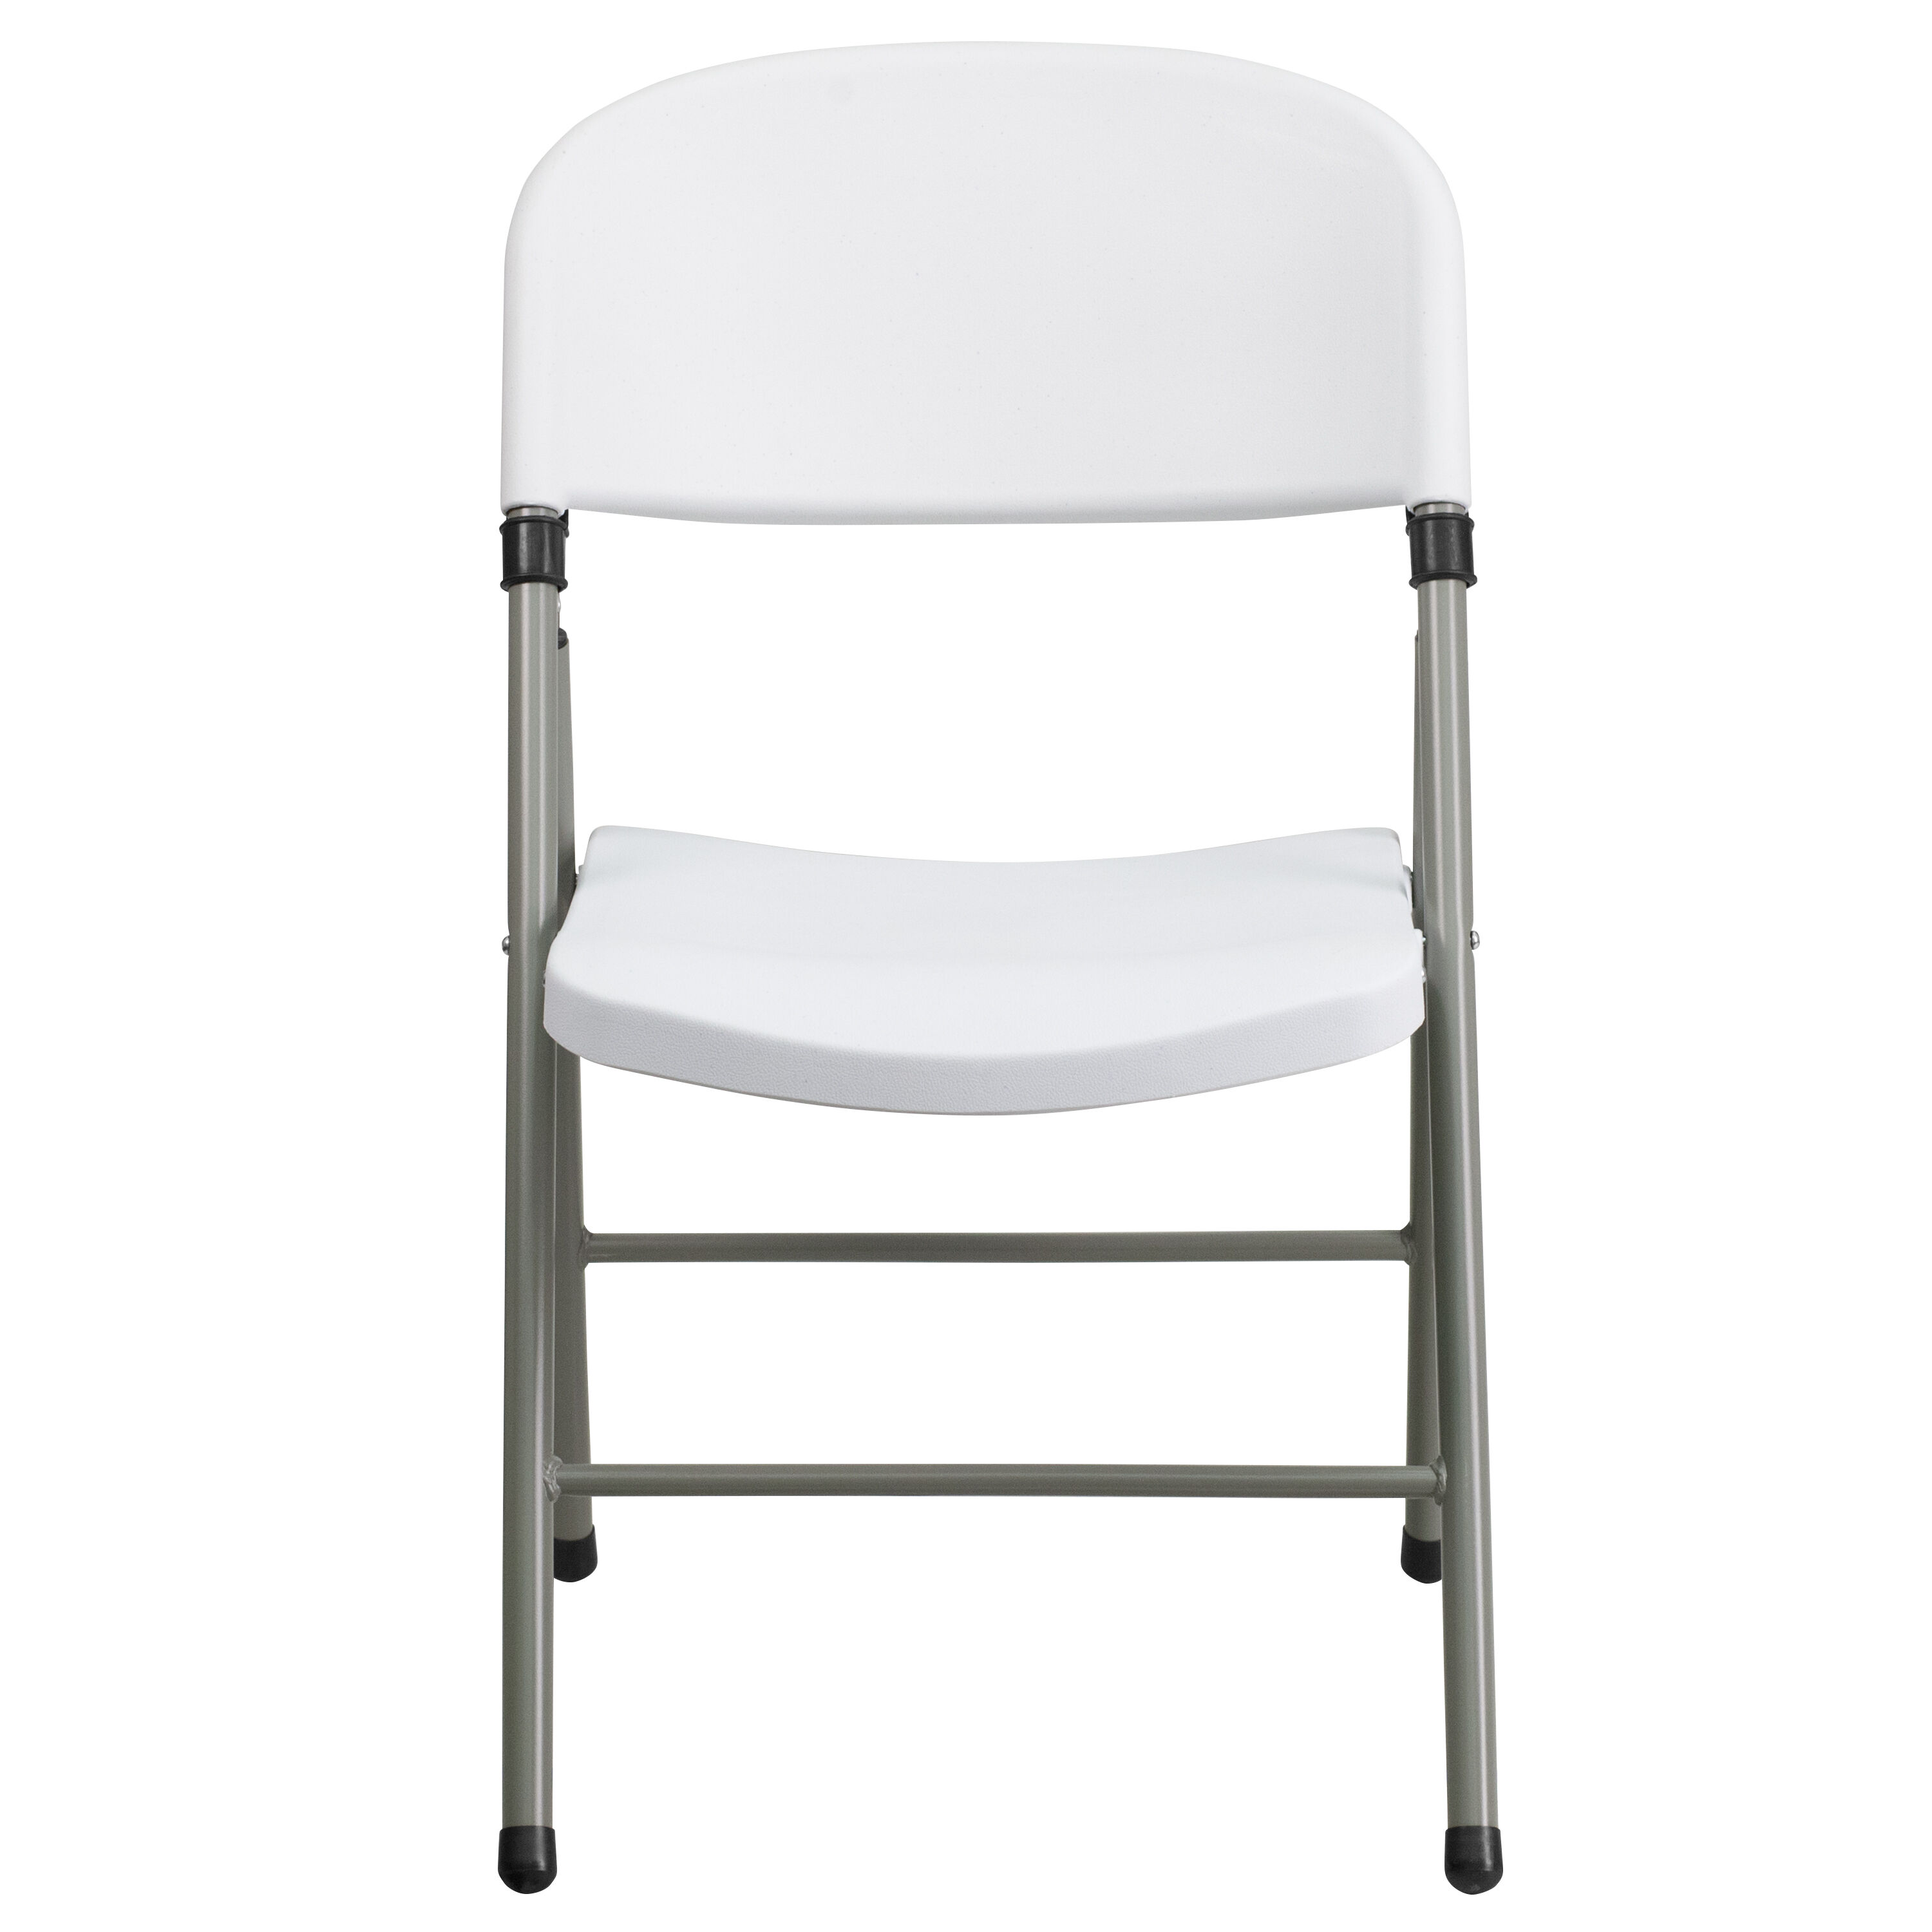 Capacity White Plastic Folding Chair With Gray Frame Is On